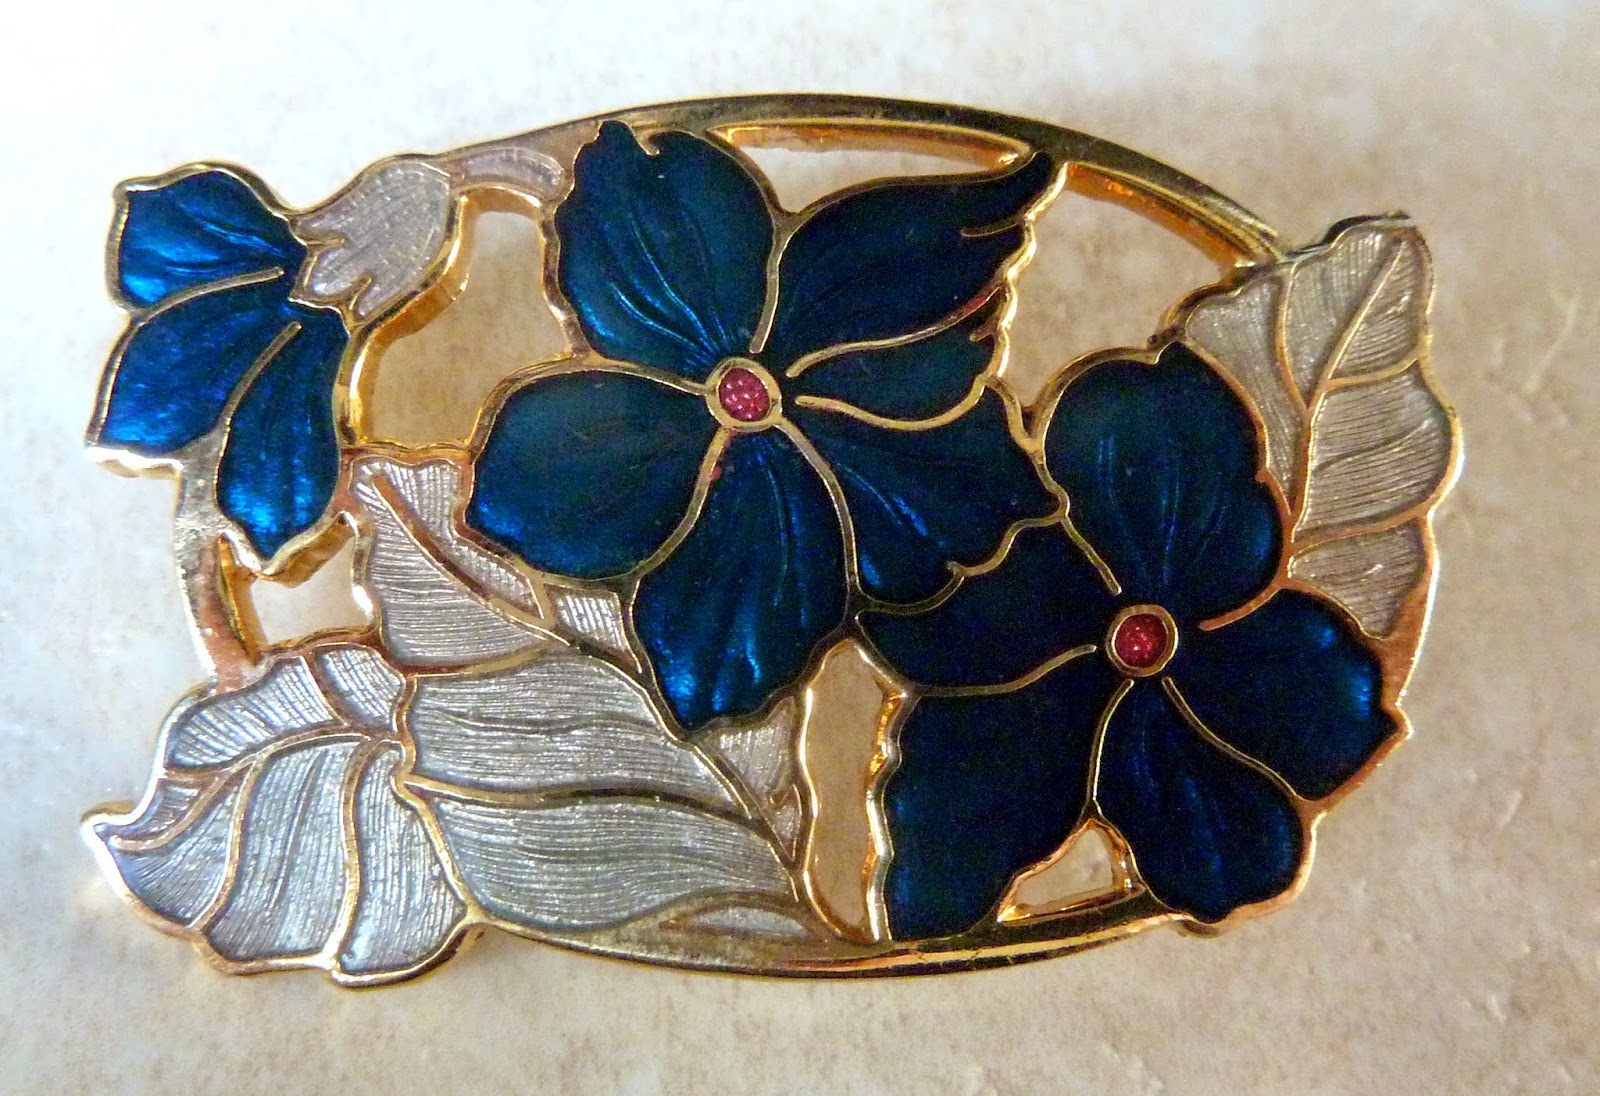 http://www.kcavintagegems.uk/fish-and-crown-cloisonne-enamel-blue-floral-brooch-415-p.asp